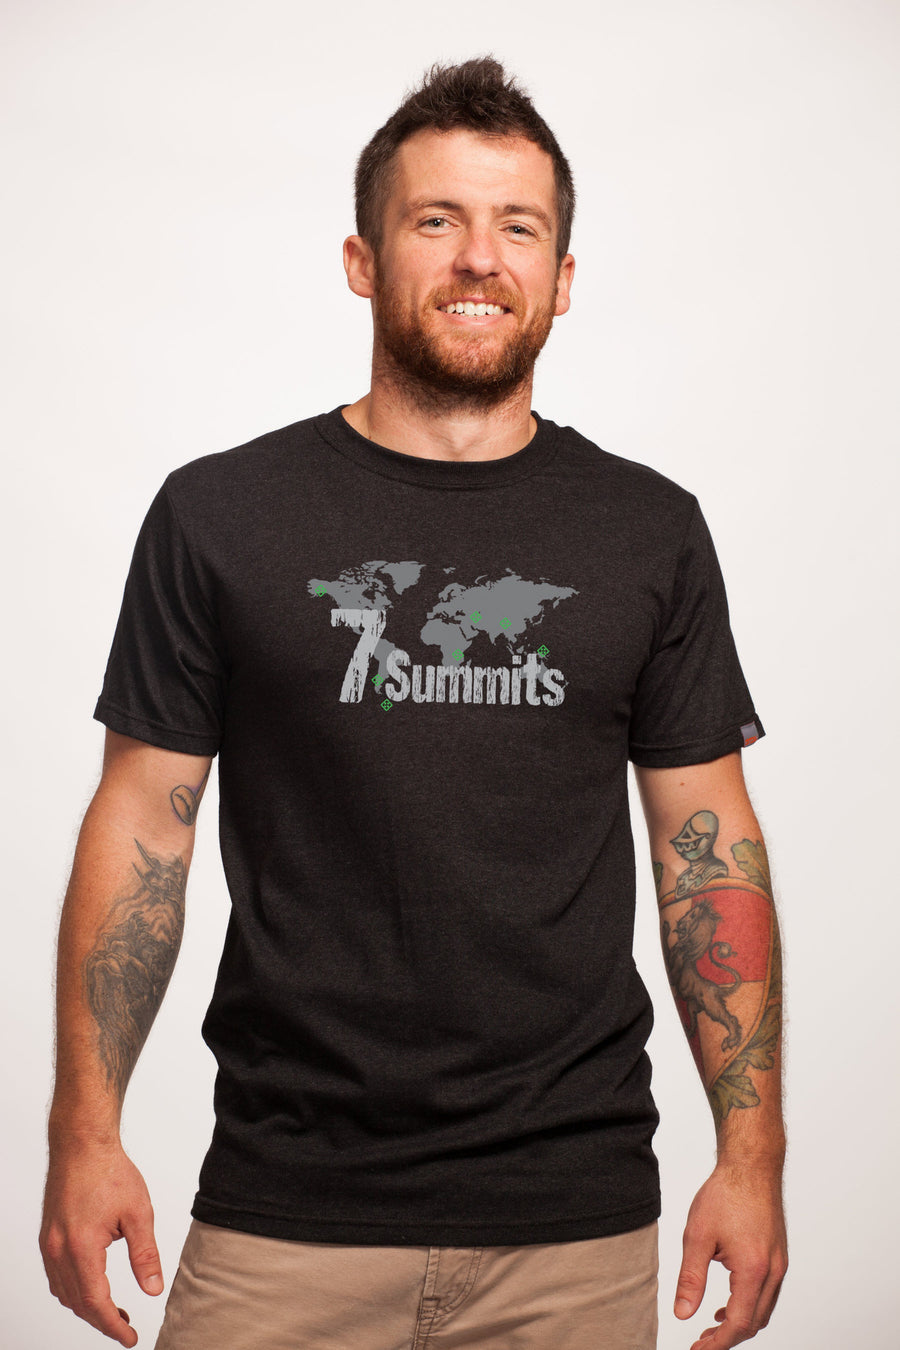 7 Summits Recycled T-Shirt